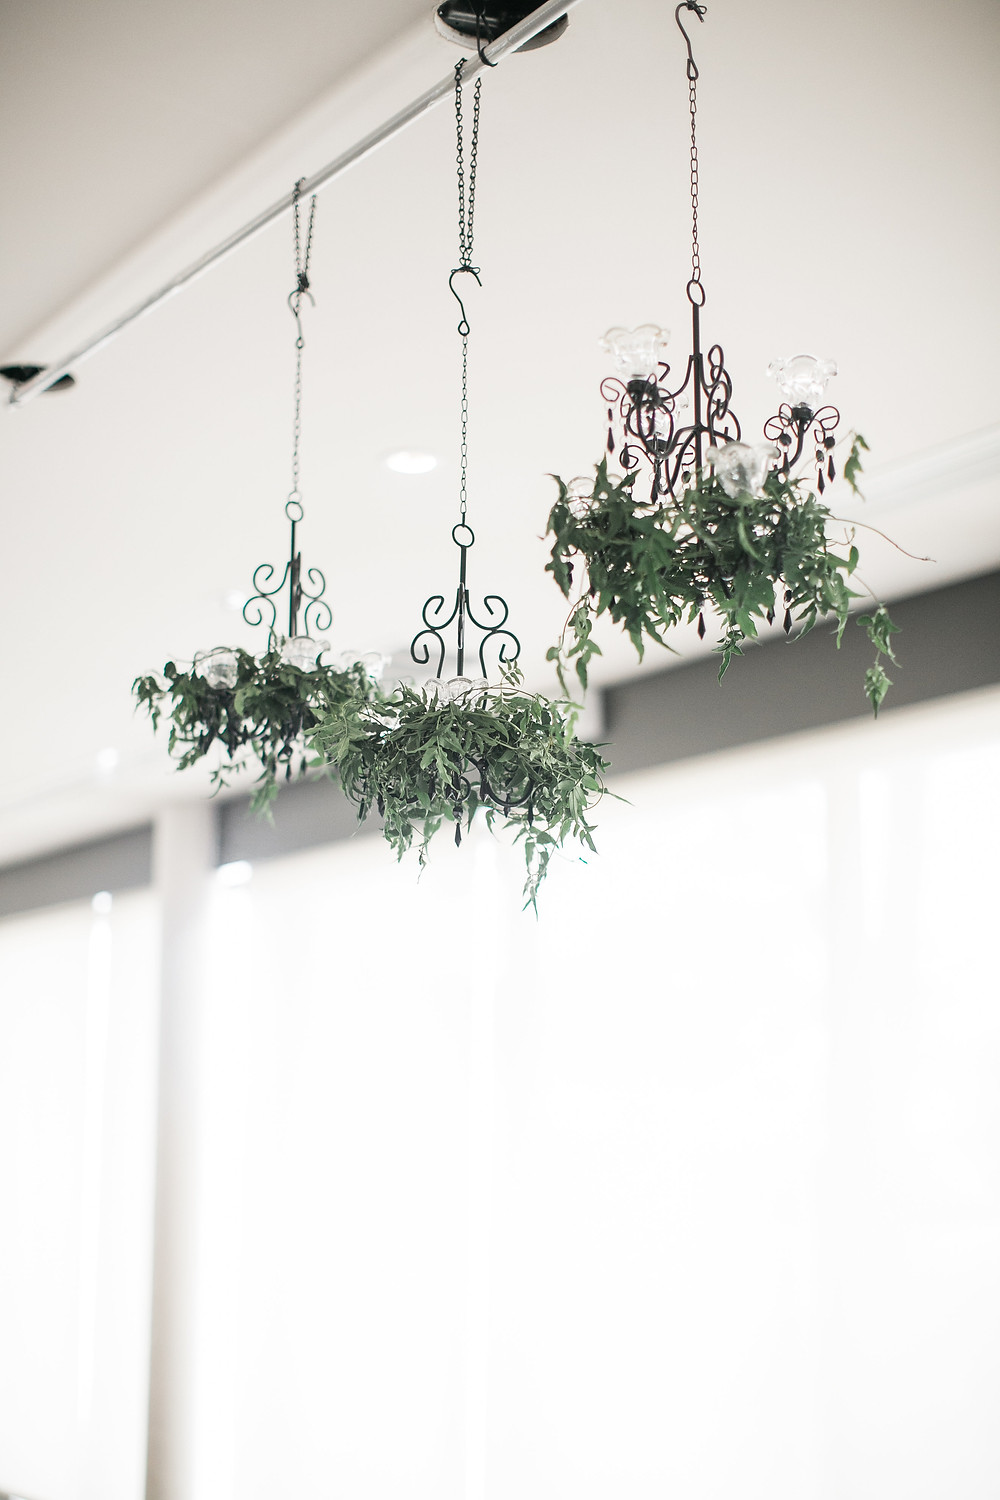 Petite wedding reception chandeliers with greenery foliage decoration hanging at eastbank venue